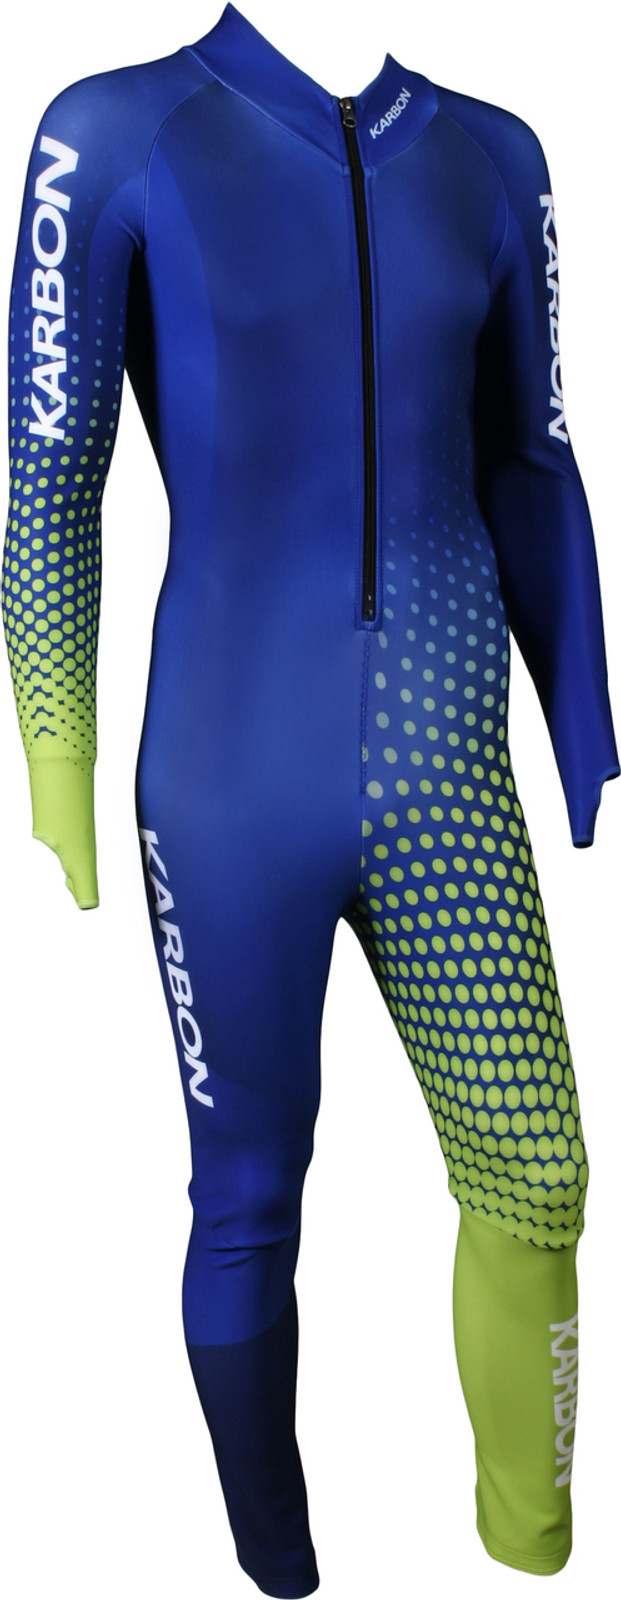 Karbon Spirit GS Race Suit